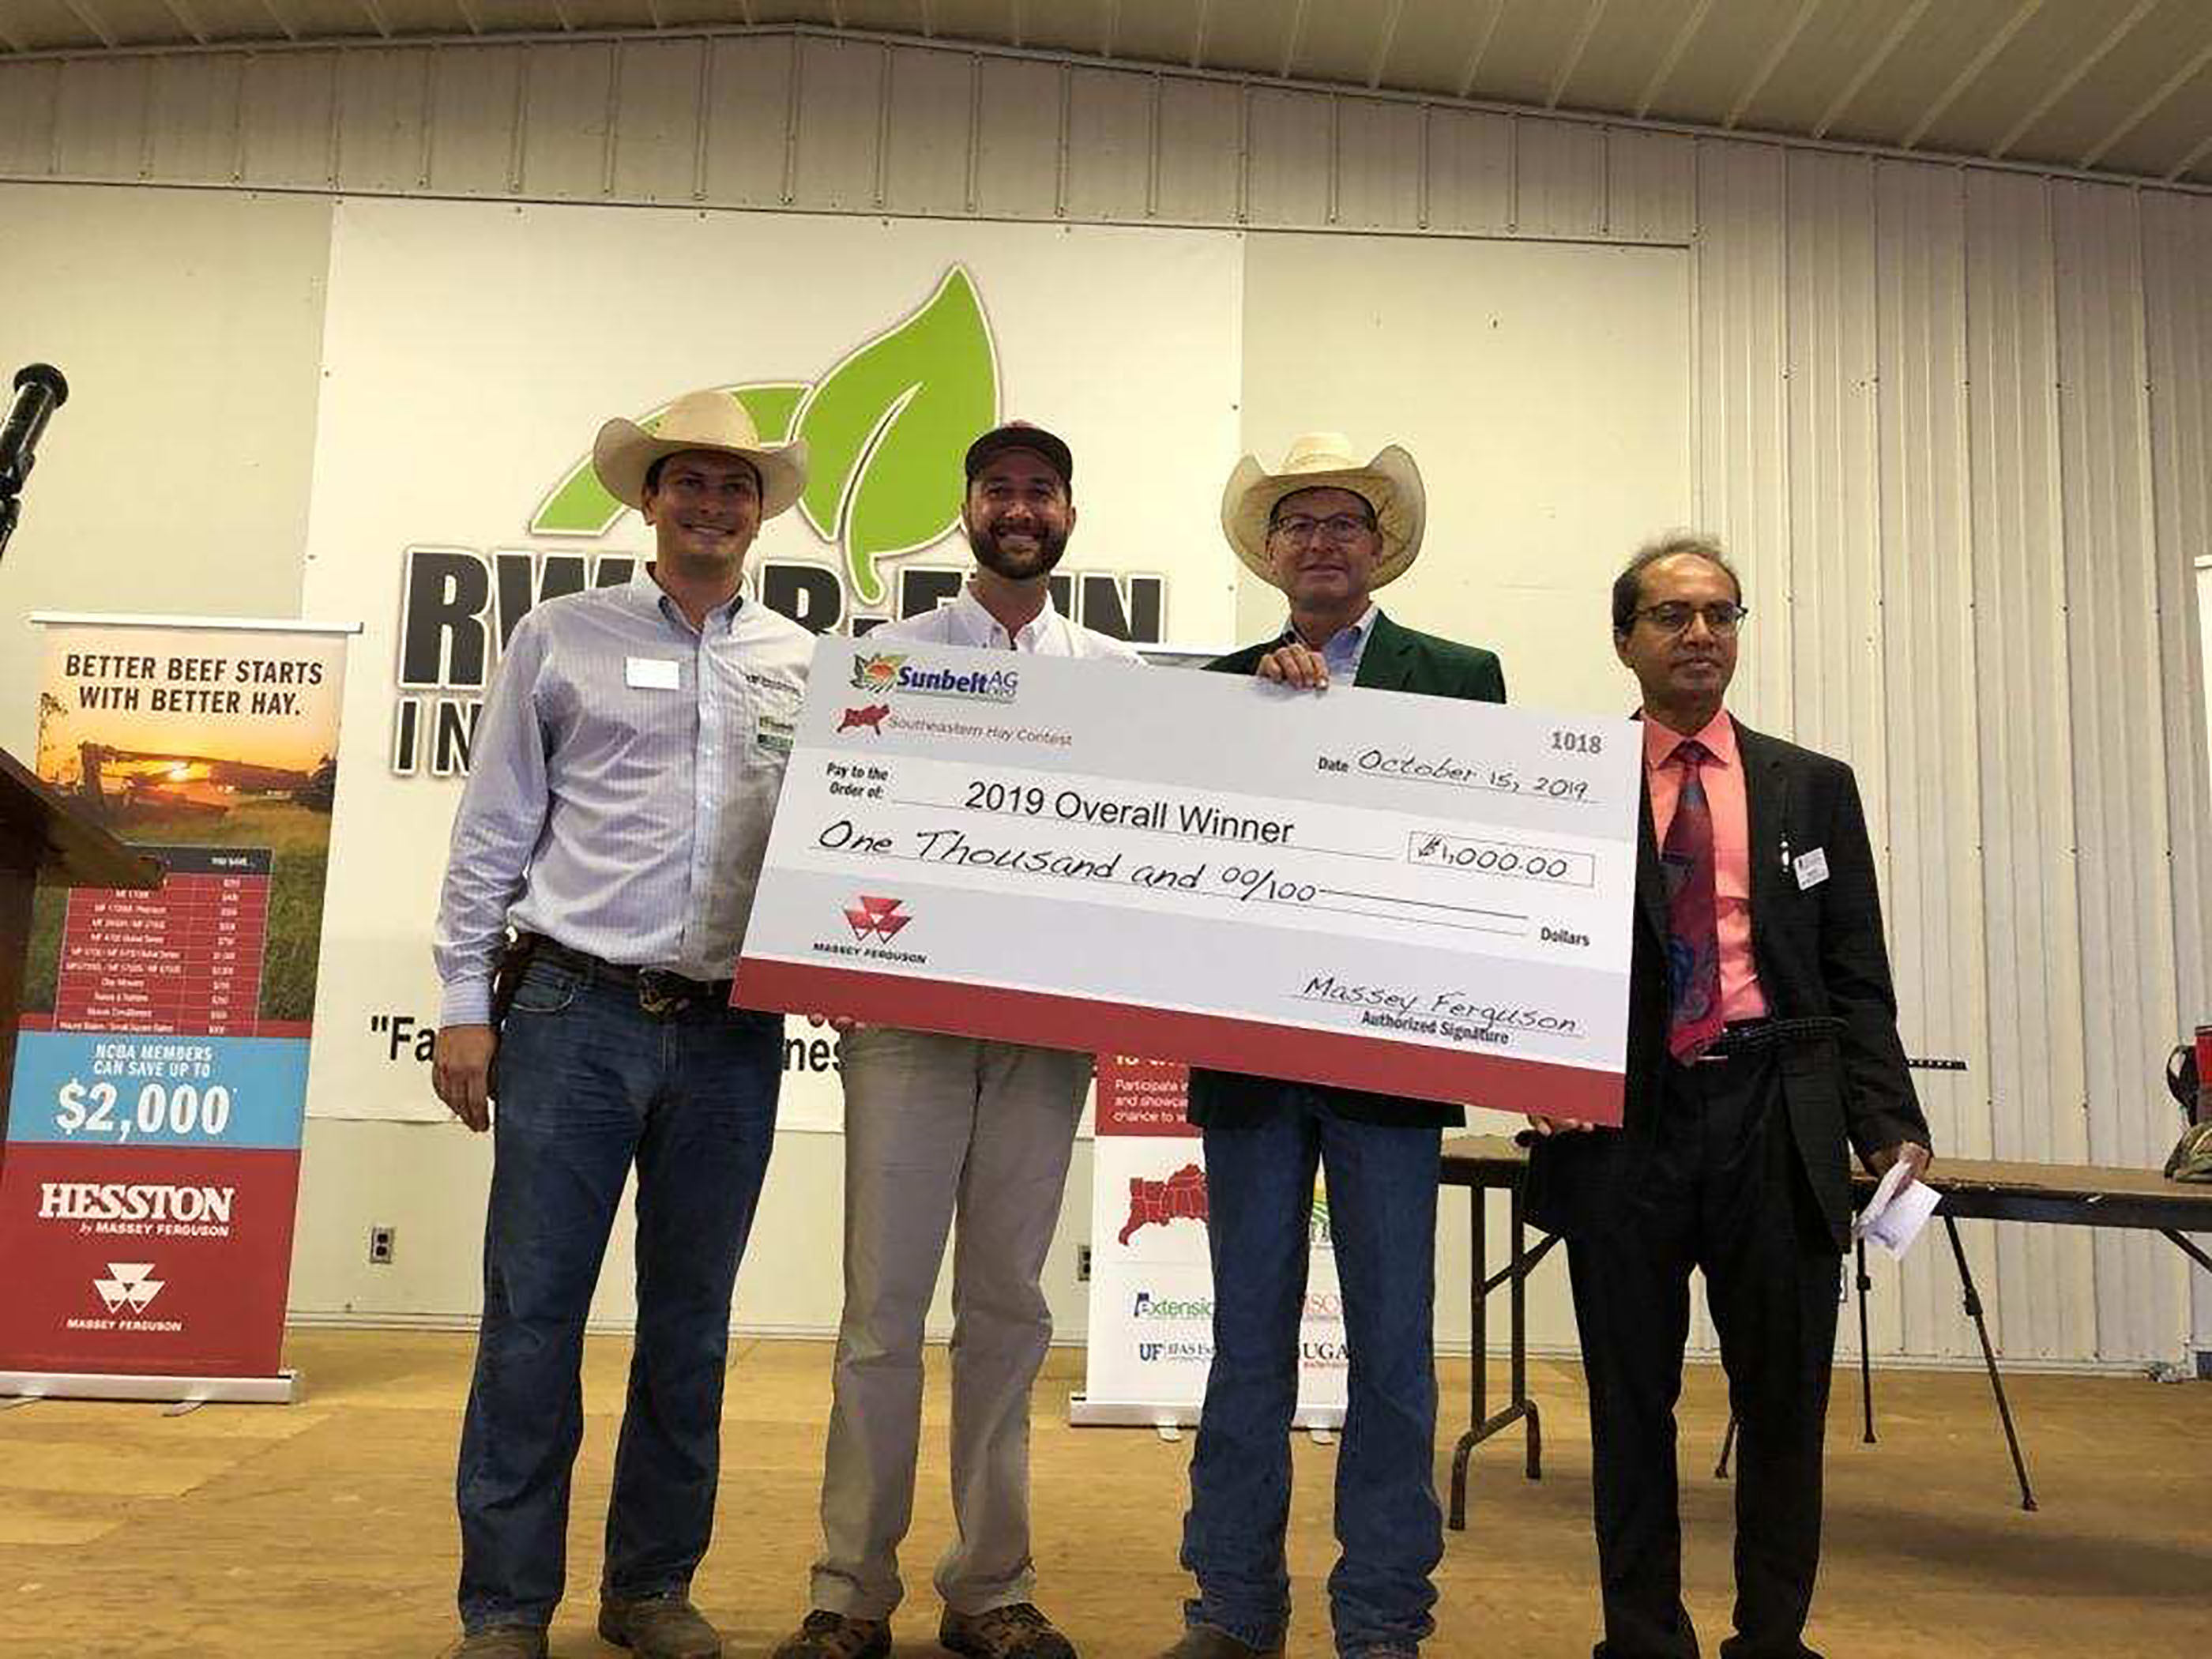 The Southeastern Hay Contest winners were announced on Oct. 15 at the Sunbelt Ag Expo in Moultrie, Georgia. The overall winner was Yon Family Farms from Ridge Spring, South Carolina.